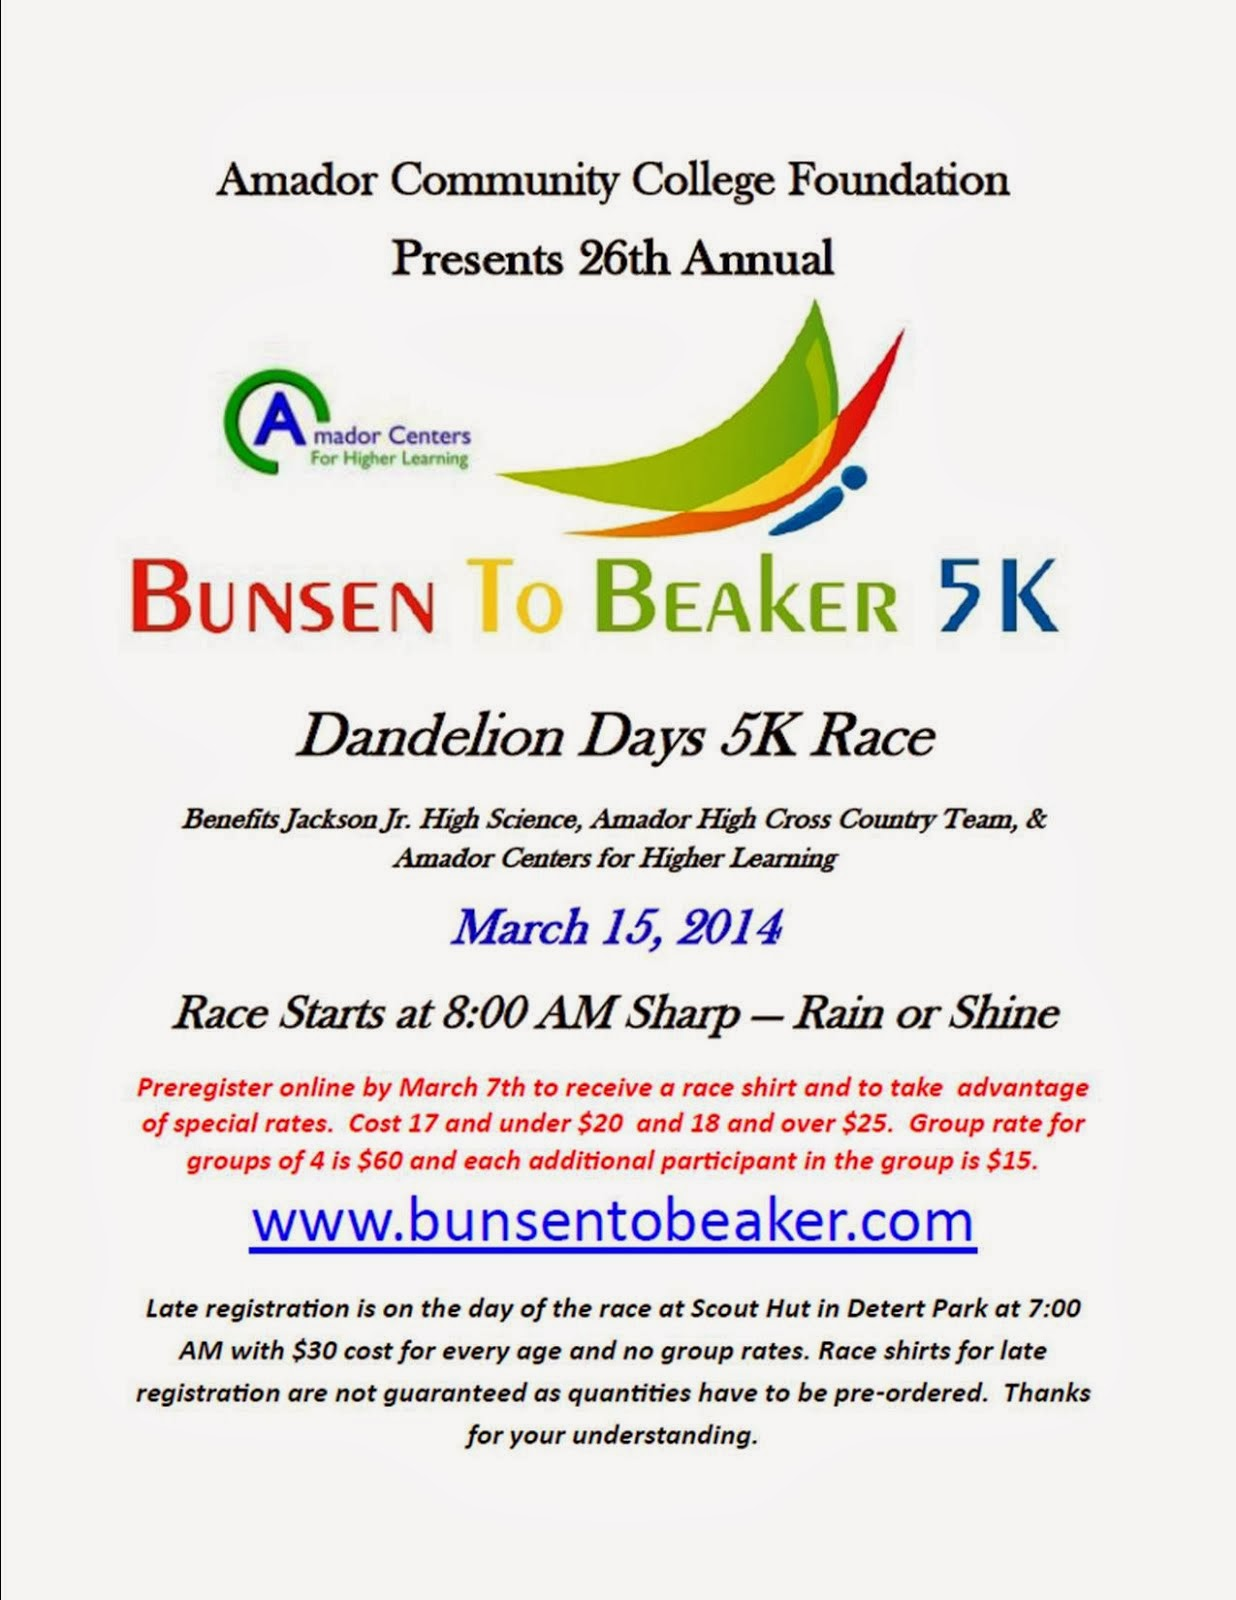 Bunsen to Beaker 5K - Sat Mar 15